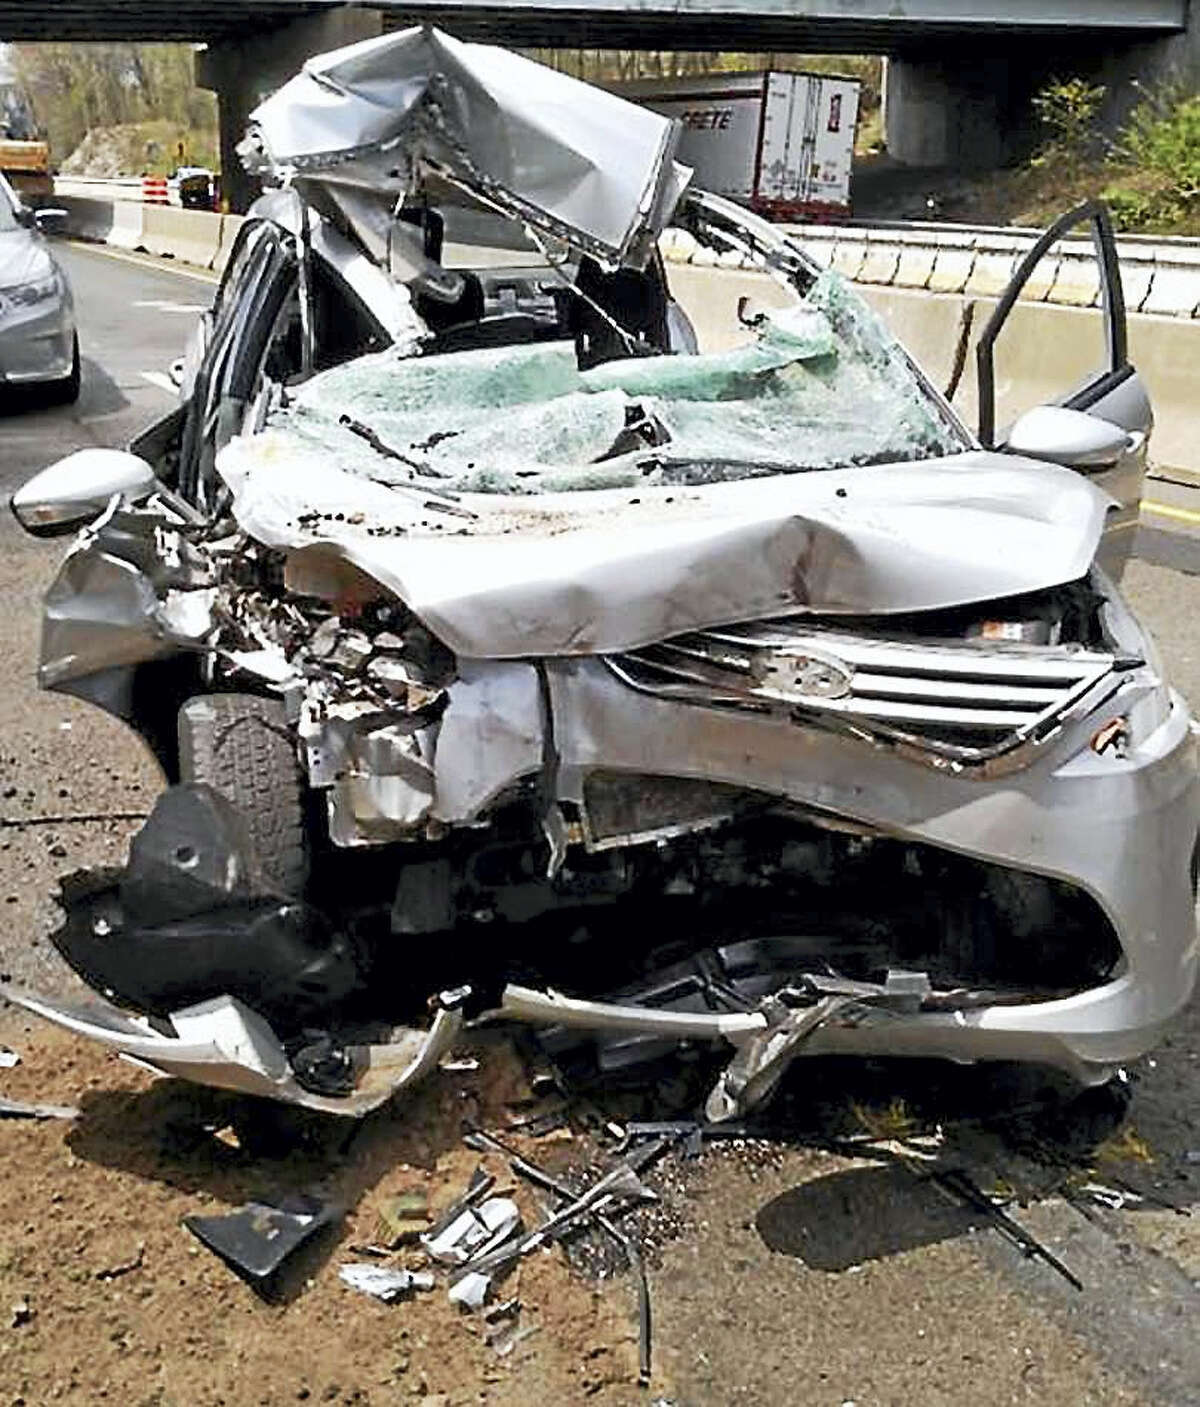 Two people were taken to the hospital Tuesday after a car crashed into a state Department of Transportation construction truck on Interstate 95 in Old Lyme.